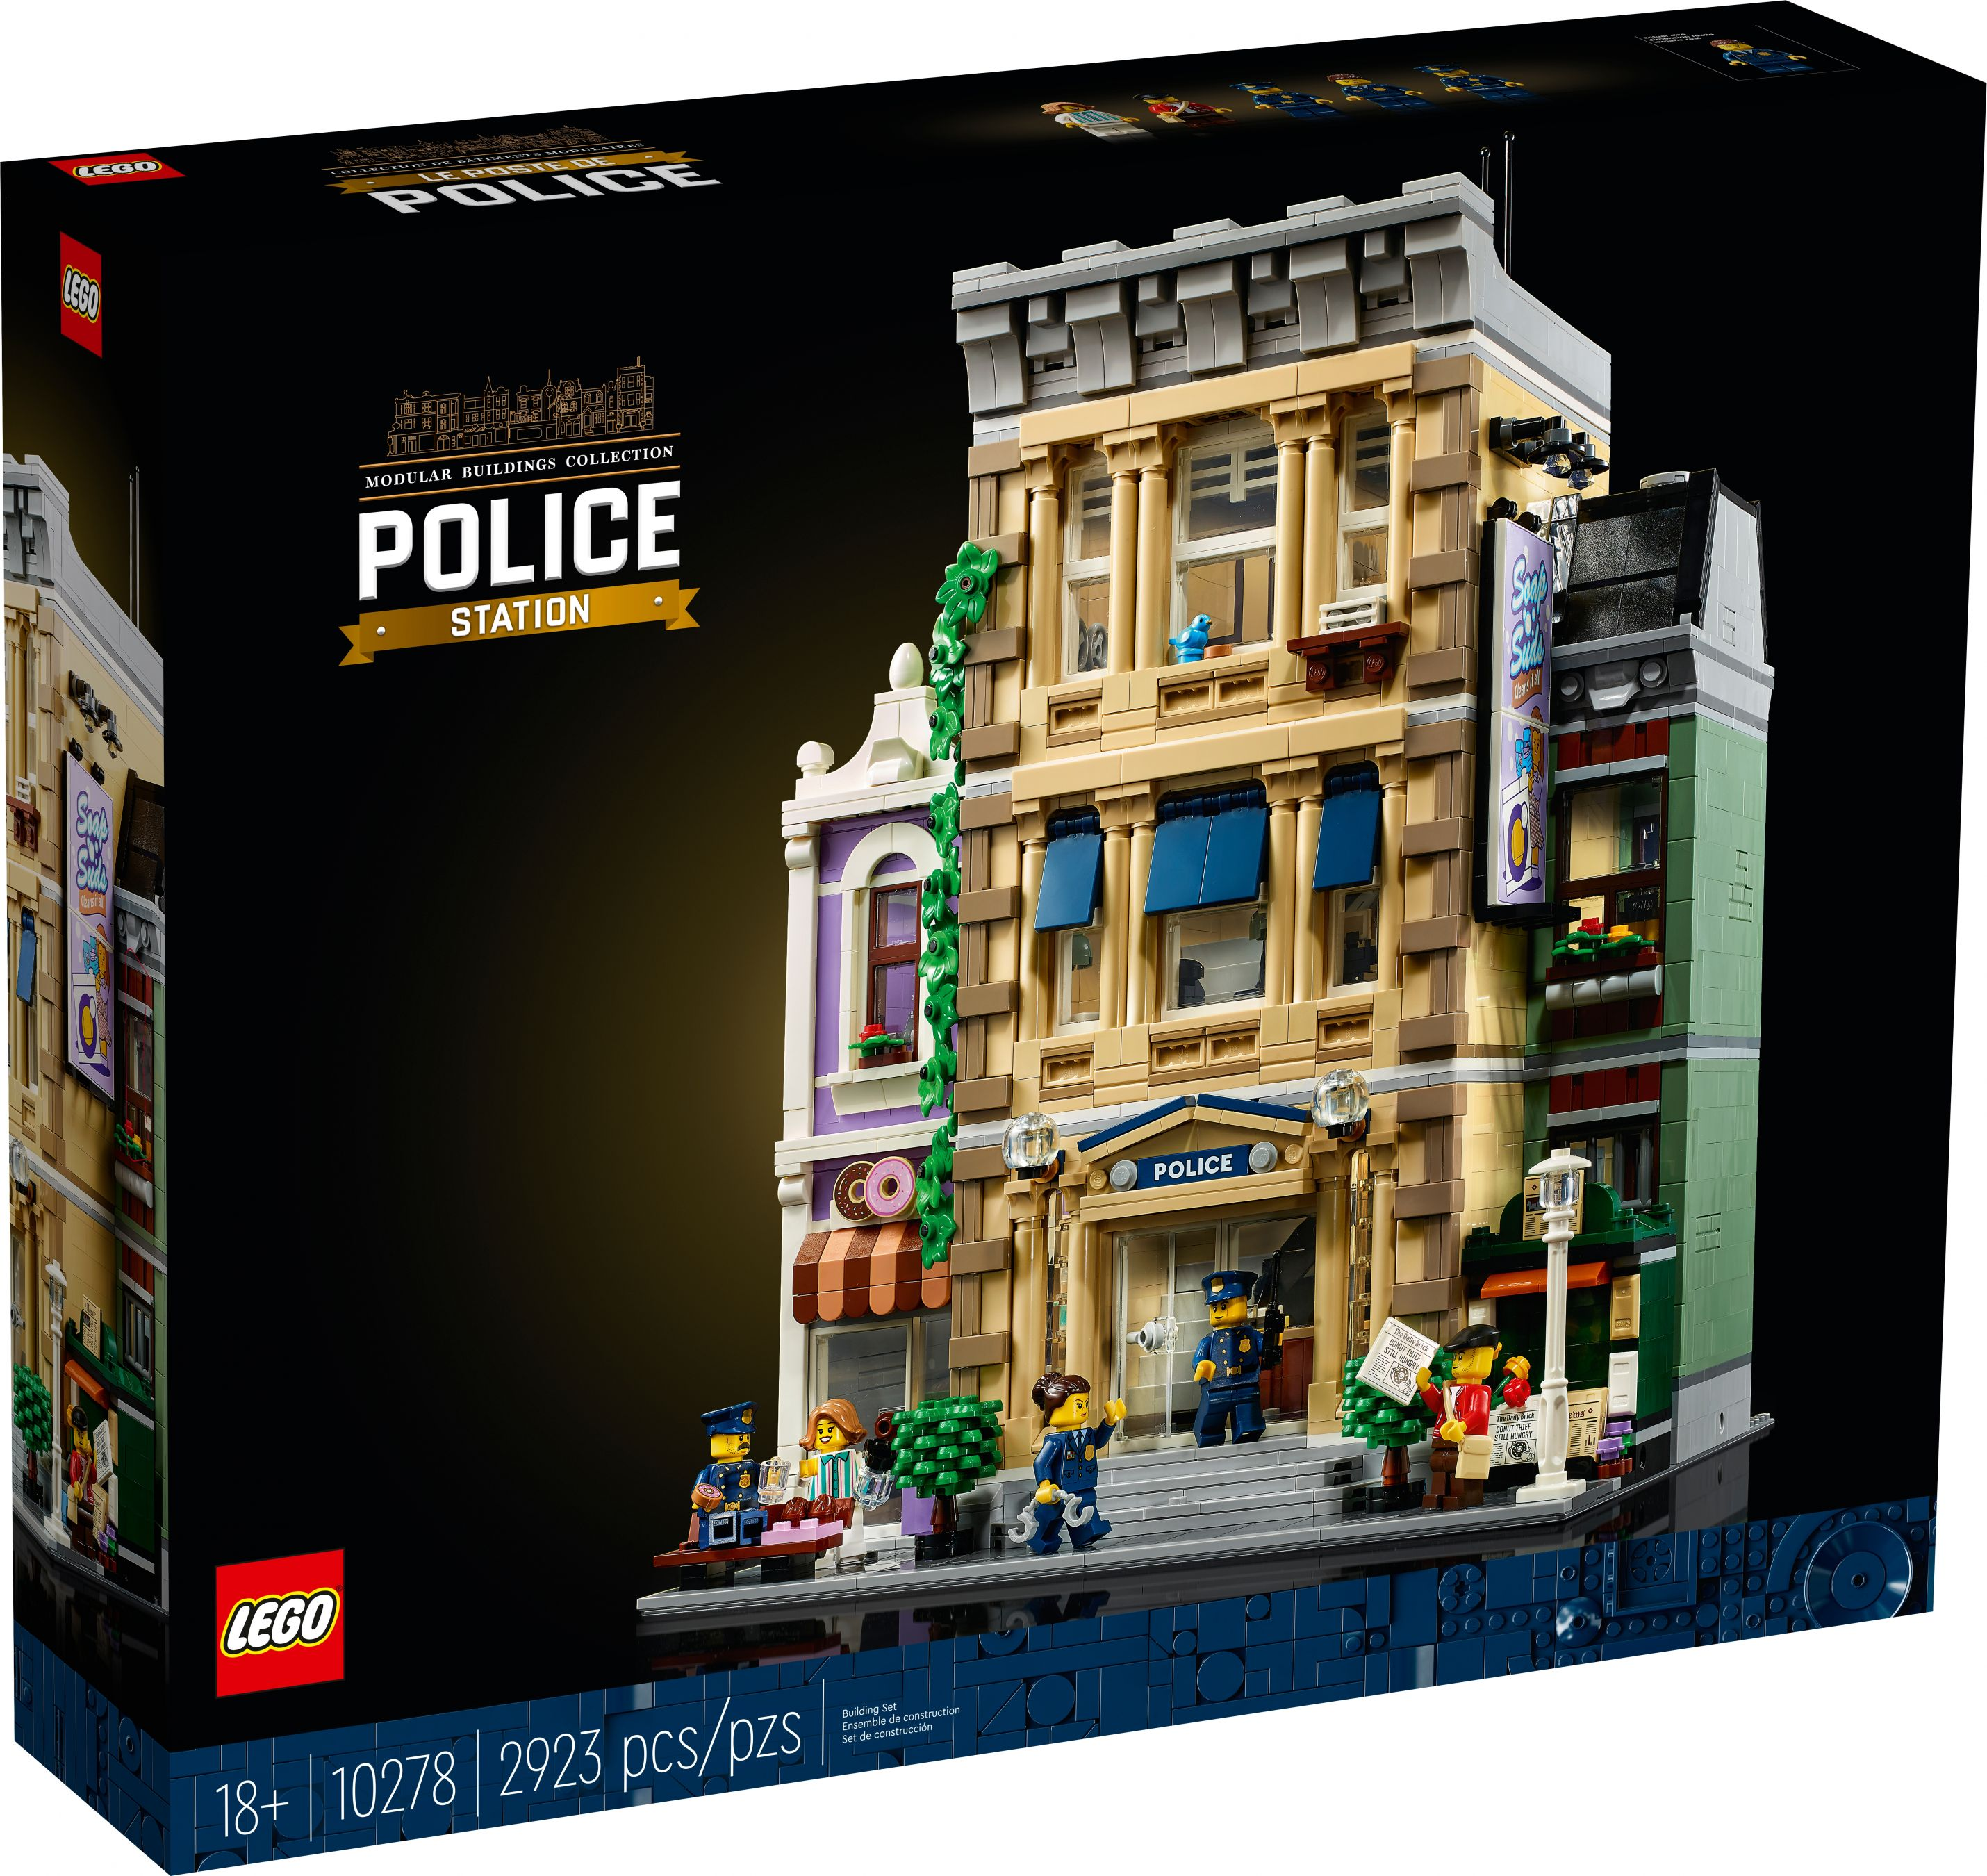 LEGO Advanced Models 10278 Polizeistation LEGO_10278_alt1.jpg